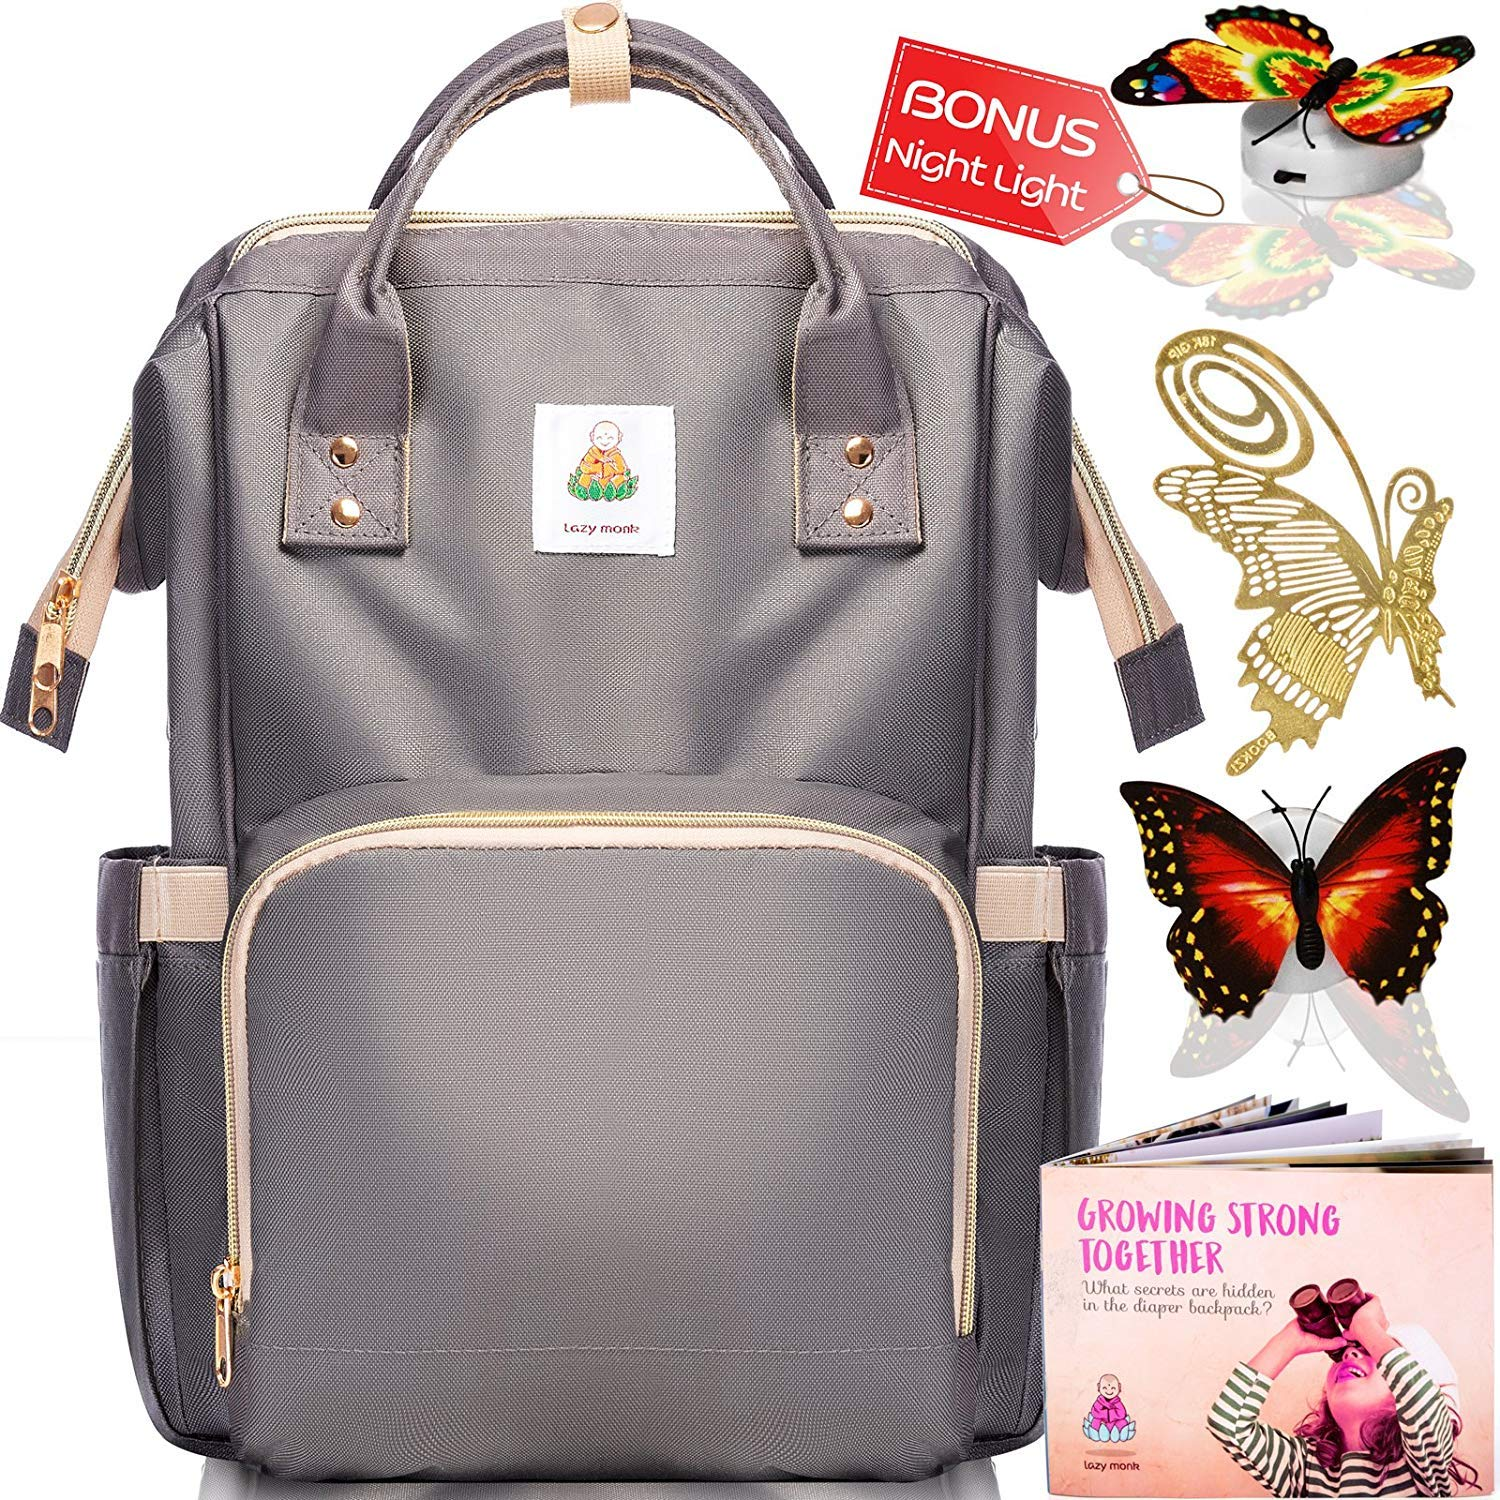 Diaper Bag Backpack - Baby Bags for Mom, Girls & Boys | 2018 Women Organizer for Boy & Girl Lazy Monk Most Wished for Diaper Bag